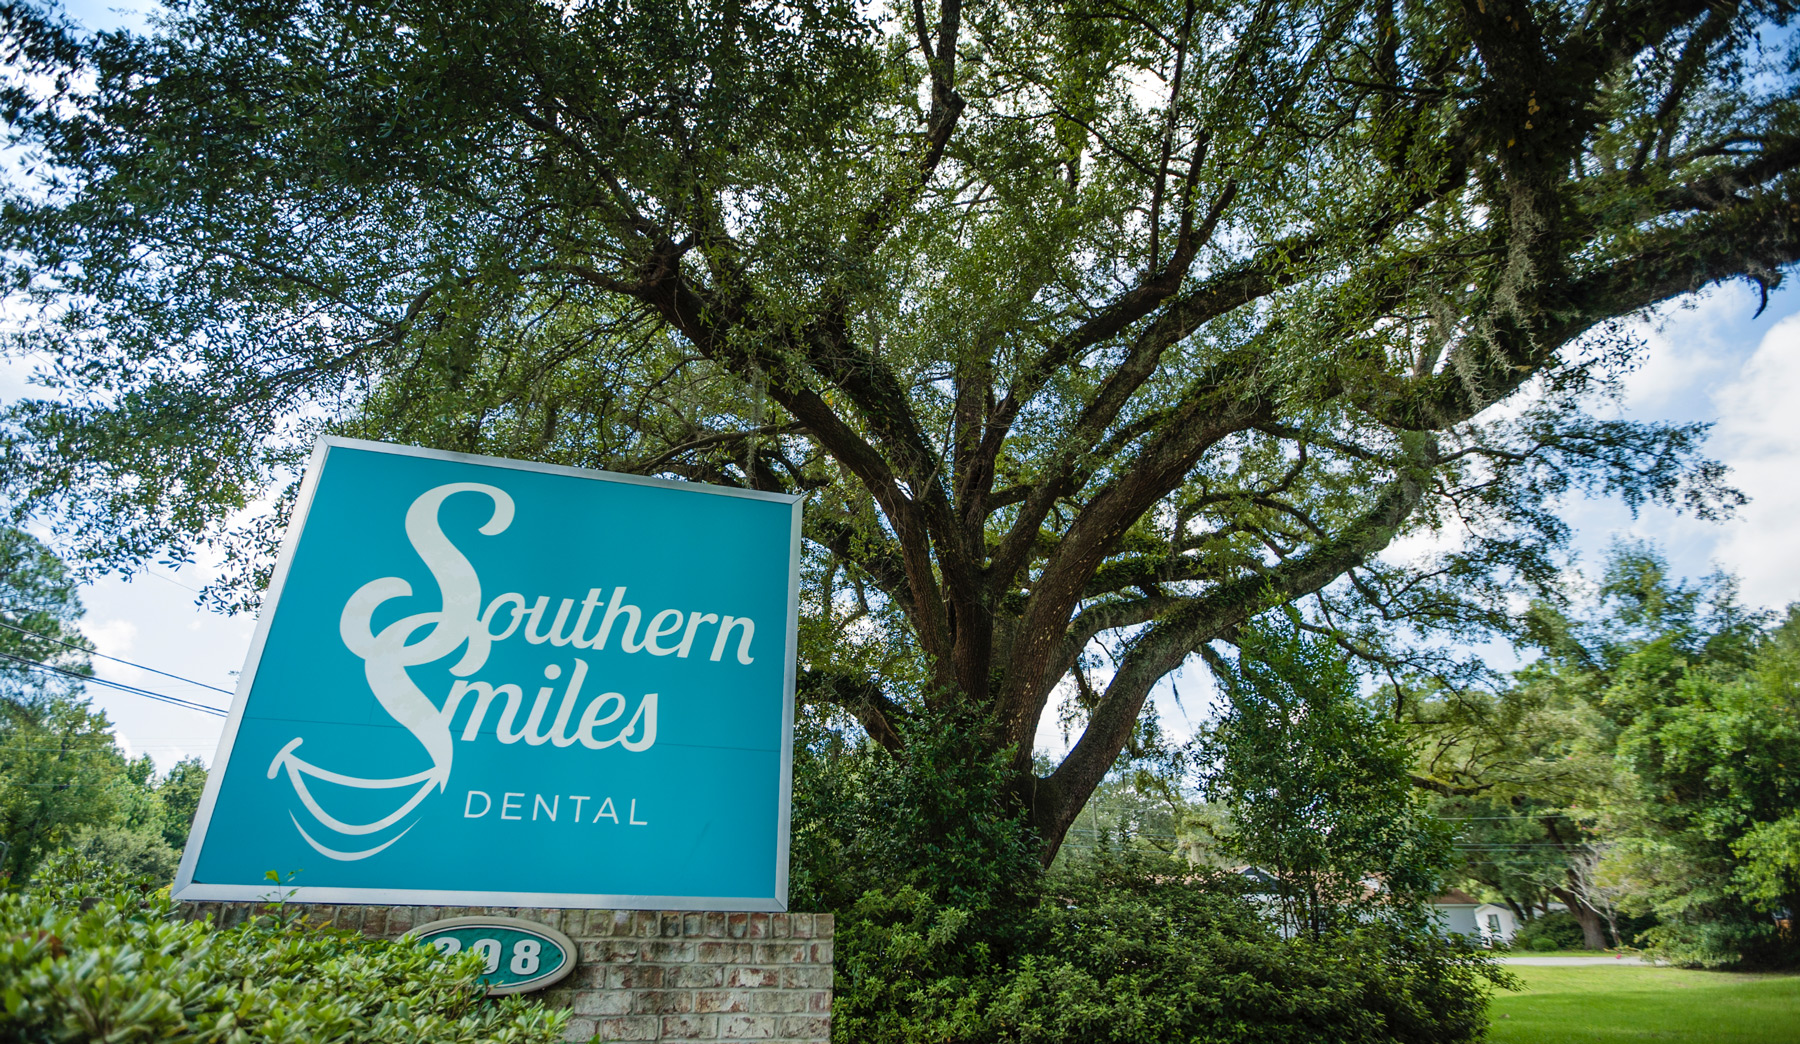 About Southern Smiles